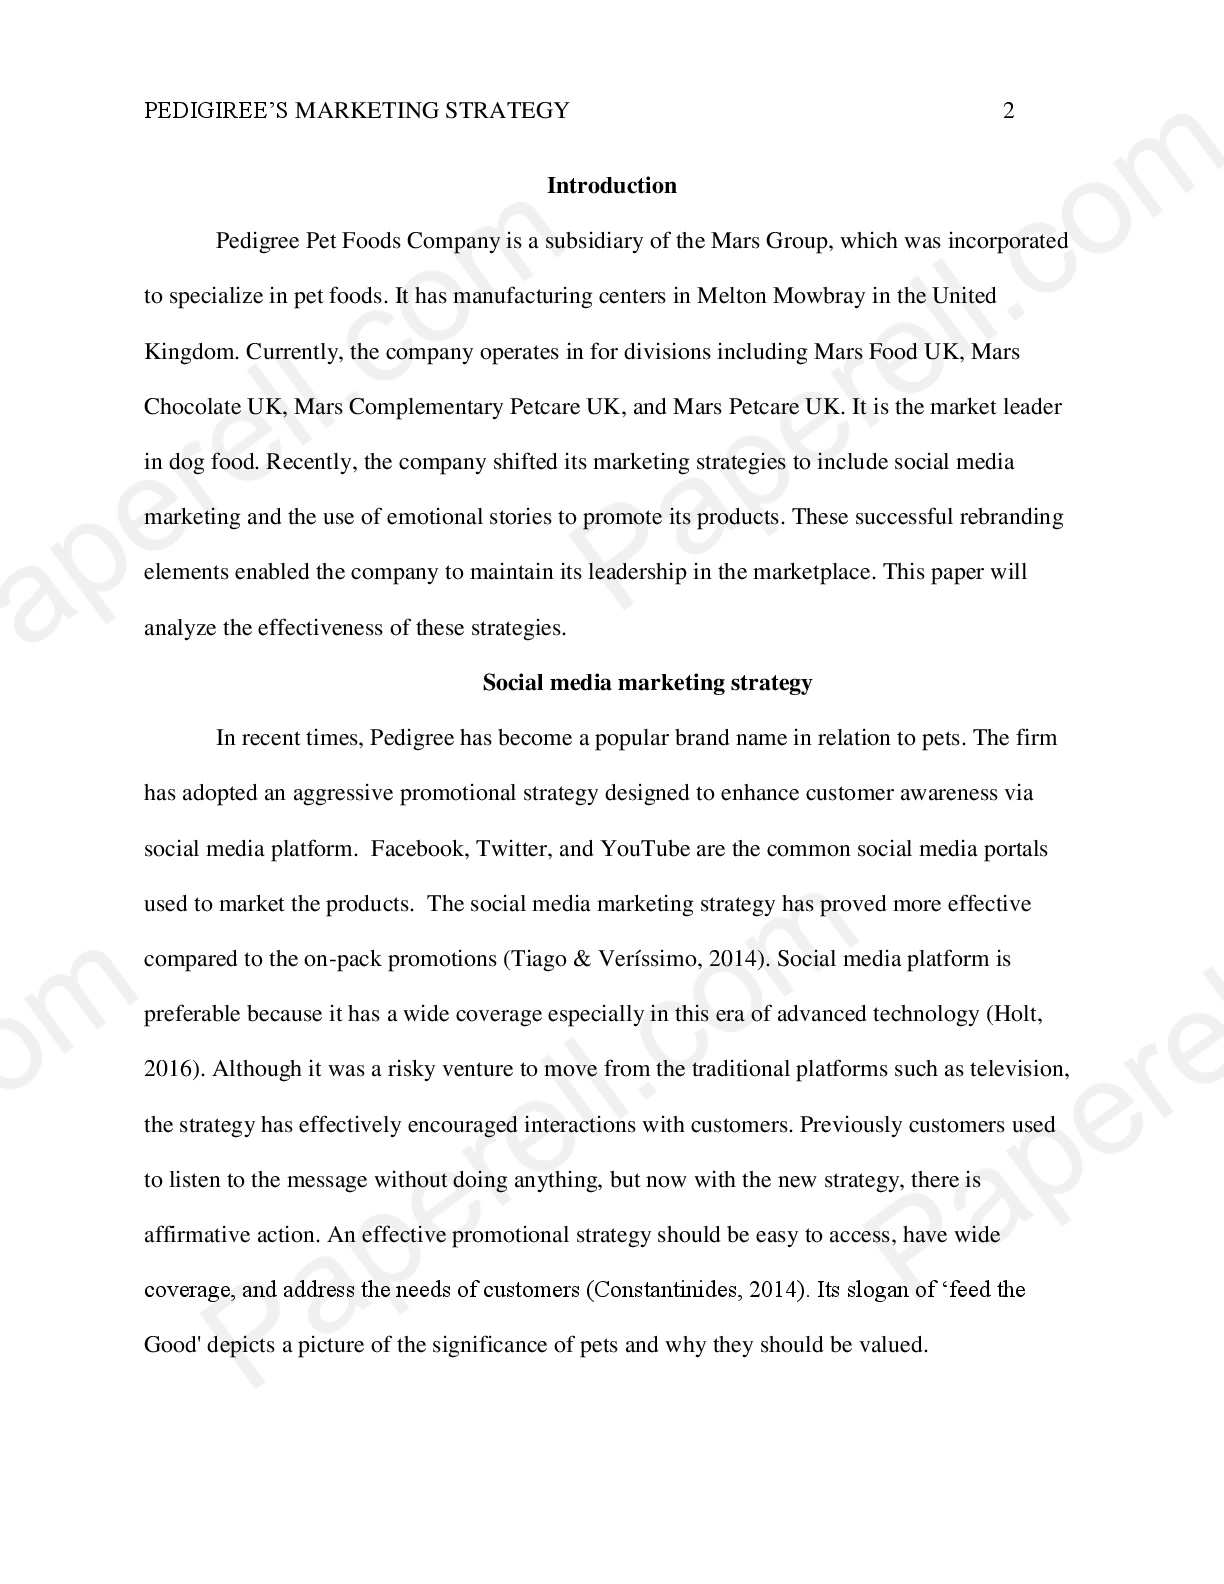 buy college research paper  paperellcom view random sample of writers work